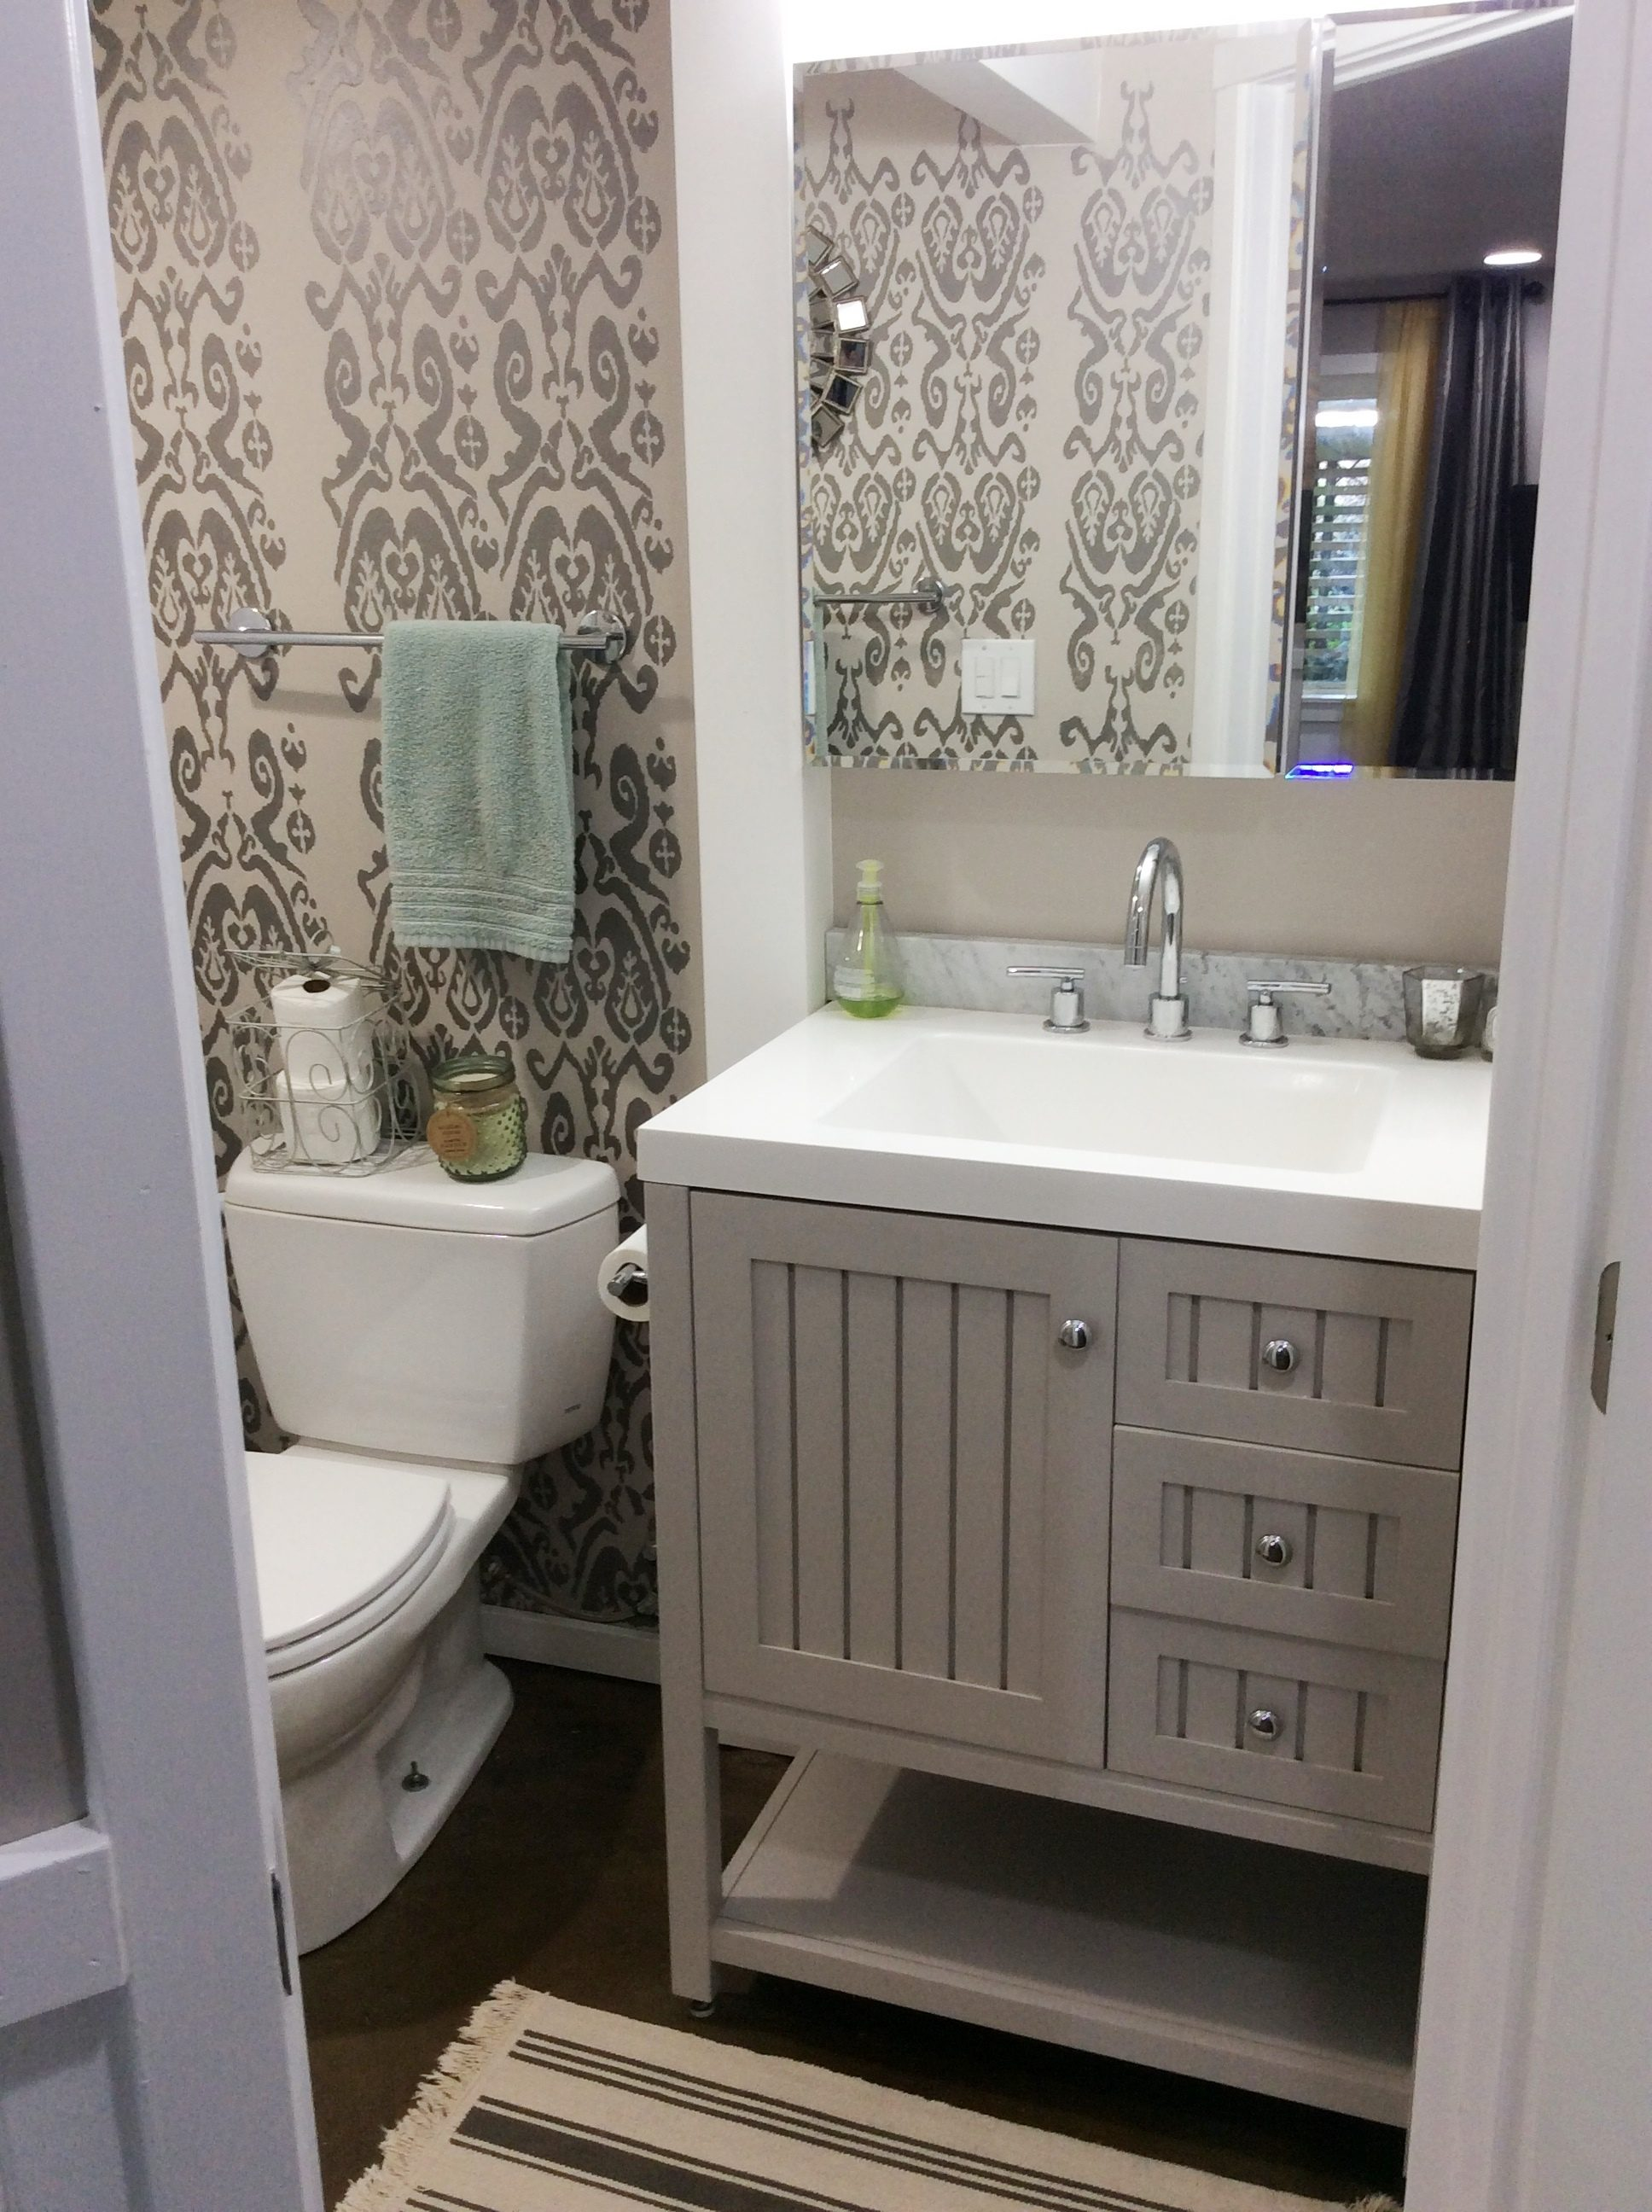 This Vanity Is By Martha Stewart At Home Depot And The Color Is Sharkey  Gray. We Liked It So Much We Painted The Entire Basement Sharkey Gray!